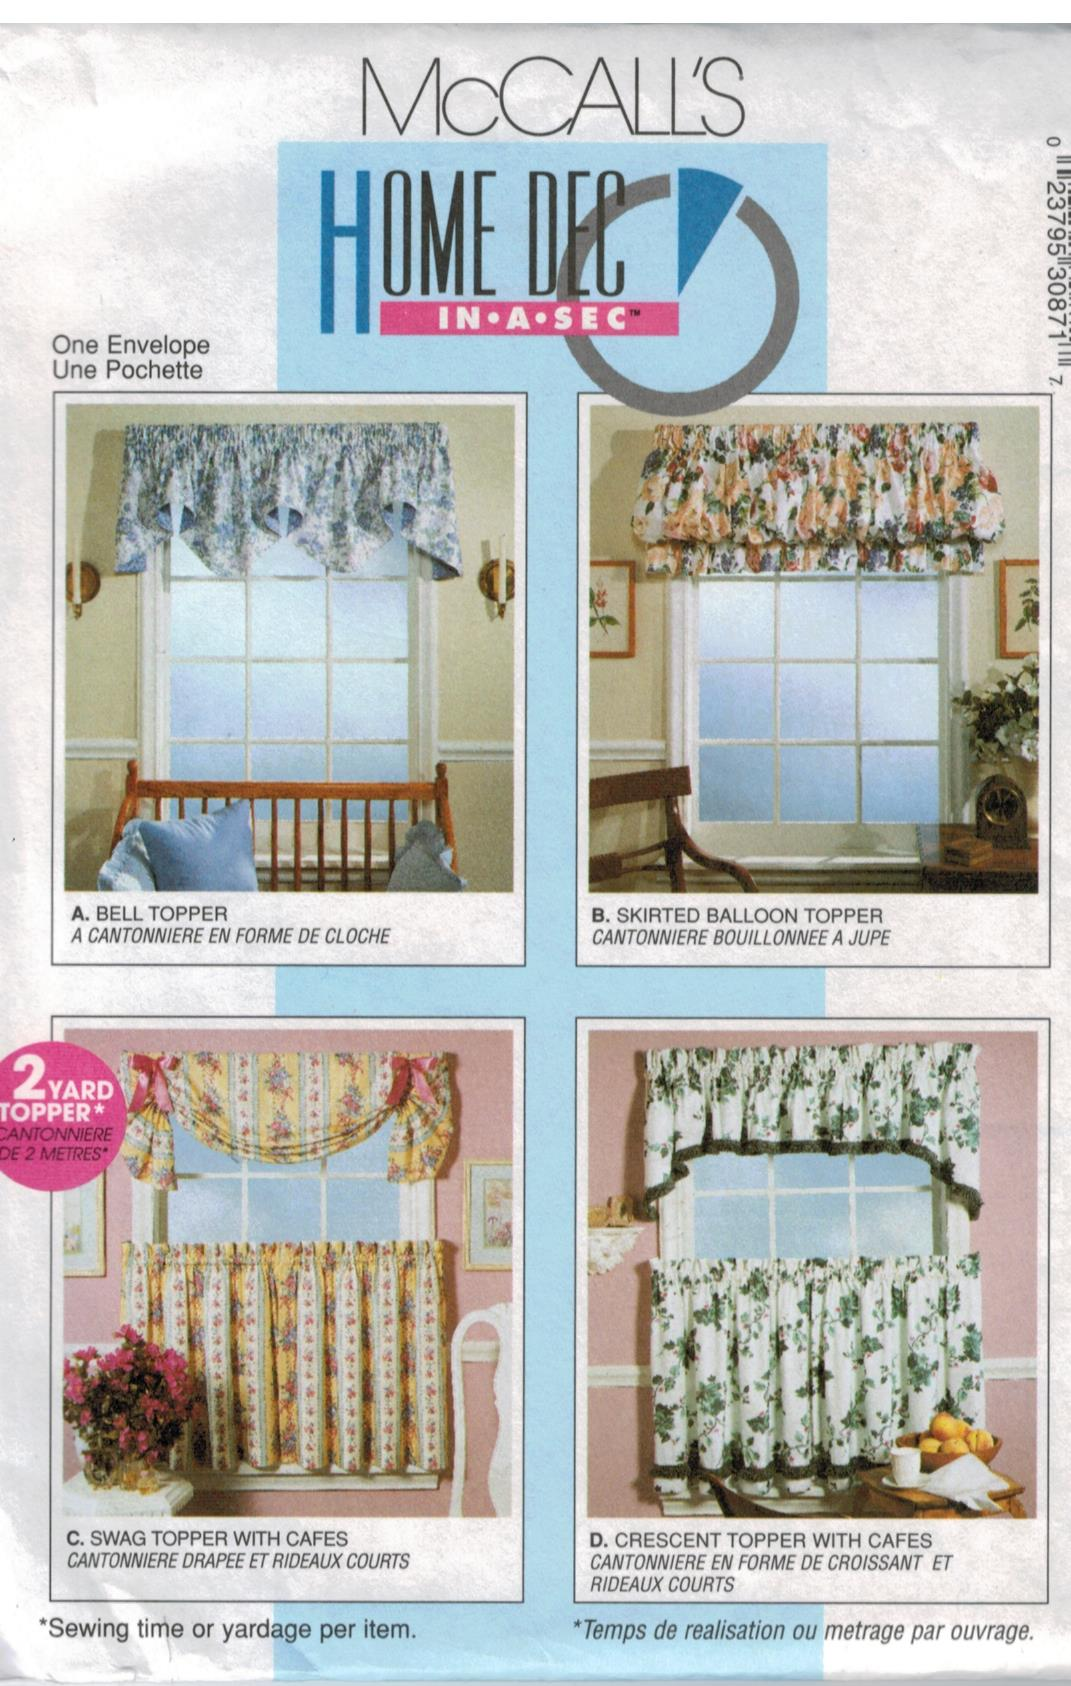 Mccalls Pattern 3087 Bell Topper Balloon Topper Swag Topper With Cafe Curtains And Crescent Topper Window Treatments Easy Home Dec Sewing Pattern Heaven